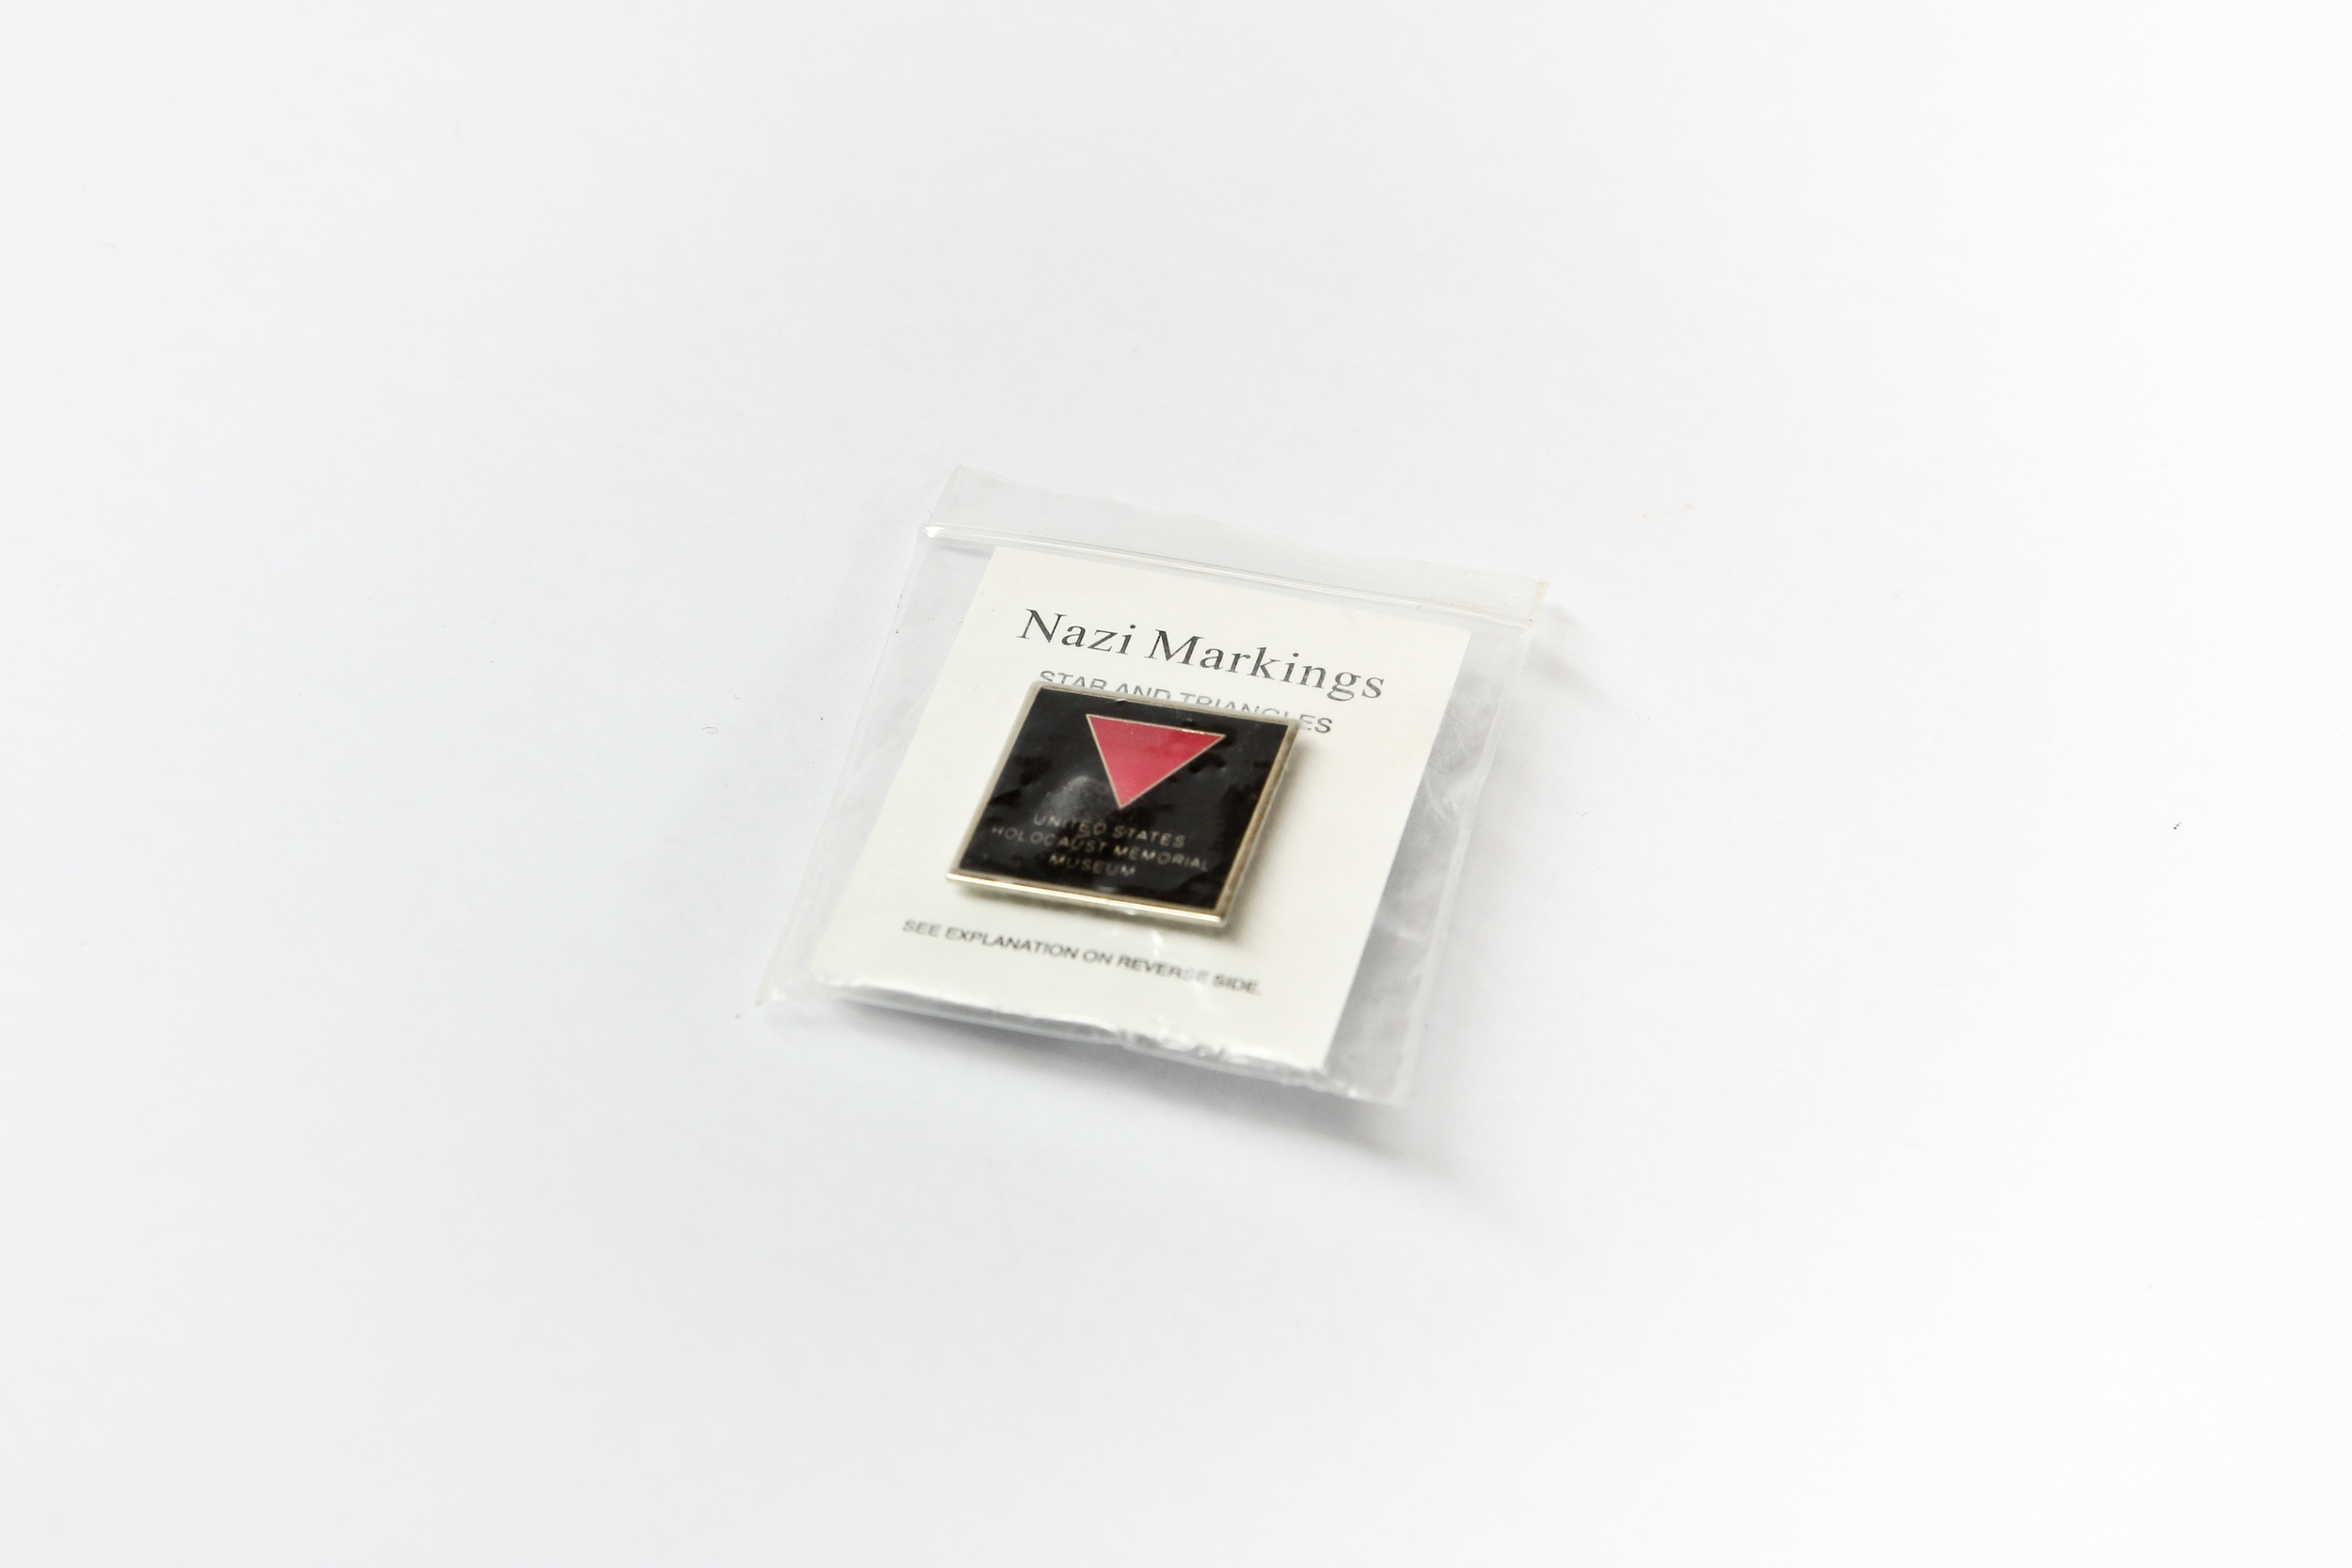 'Pink triangle' pin